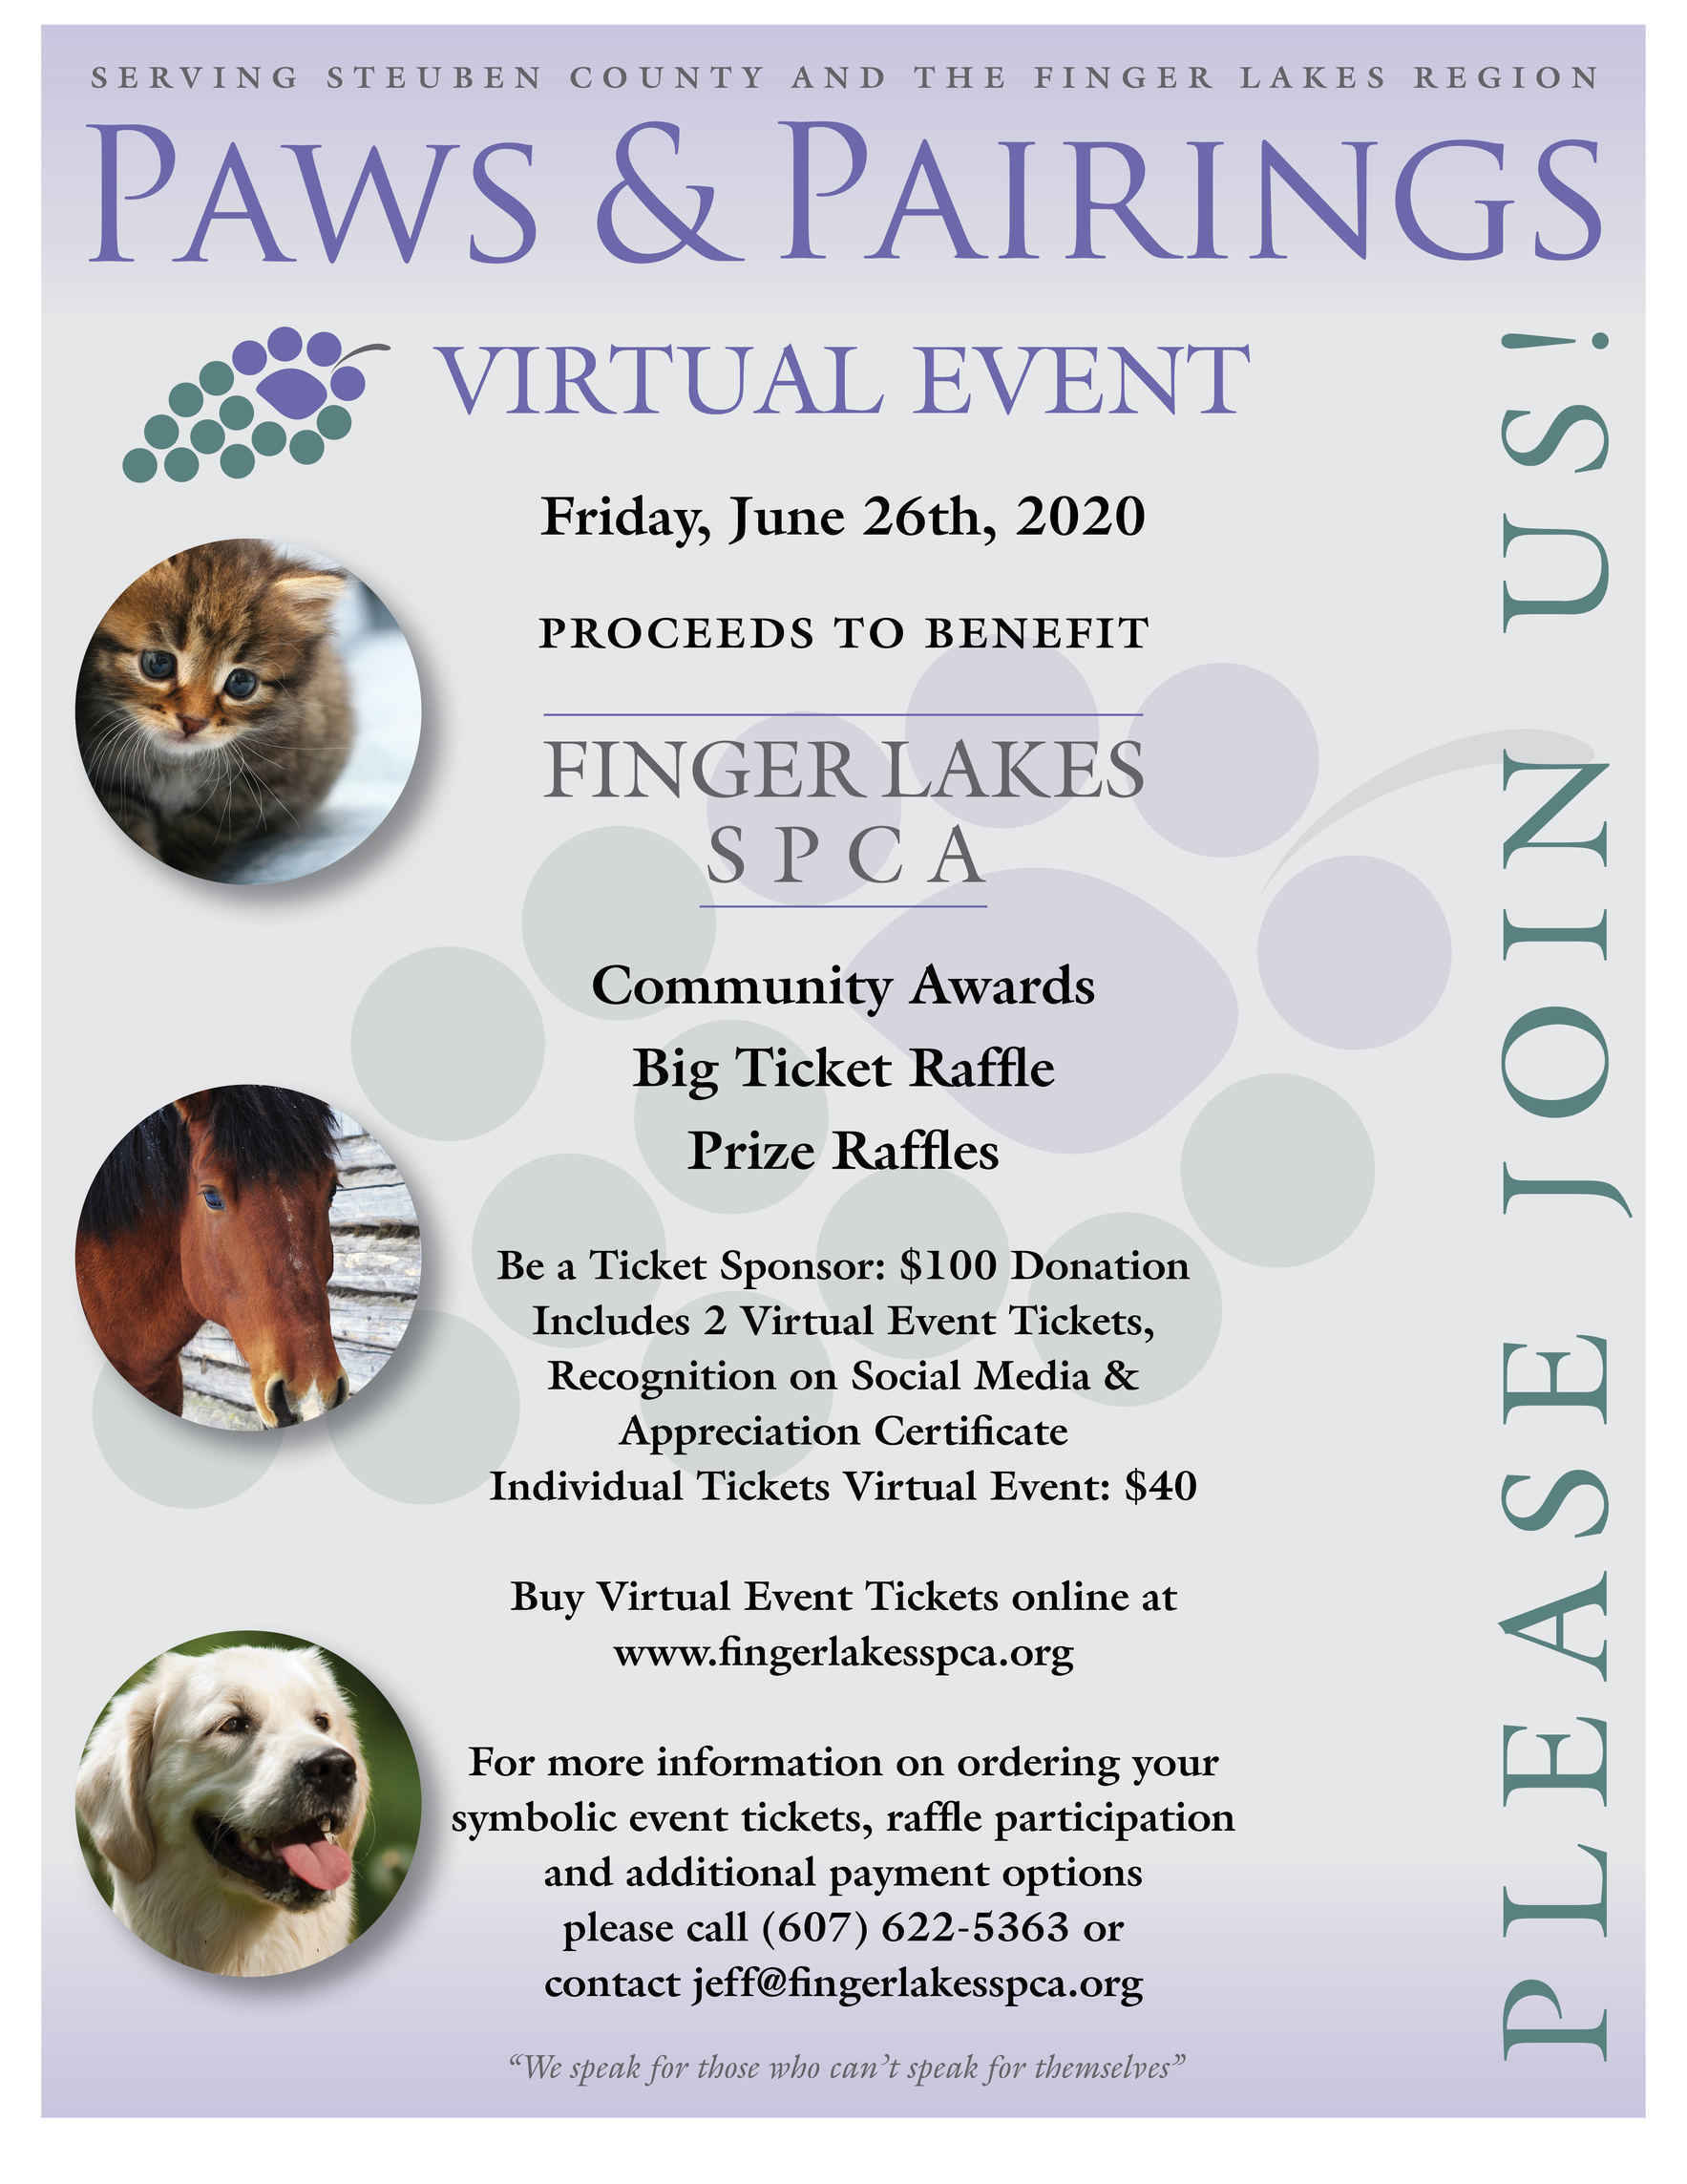 Paws & Pairings Virtual Event image